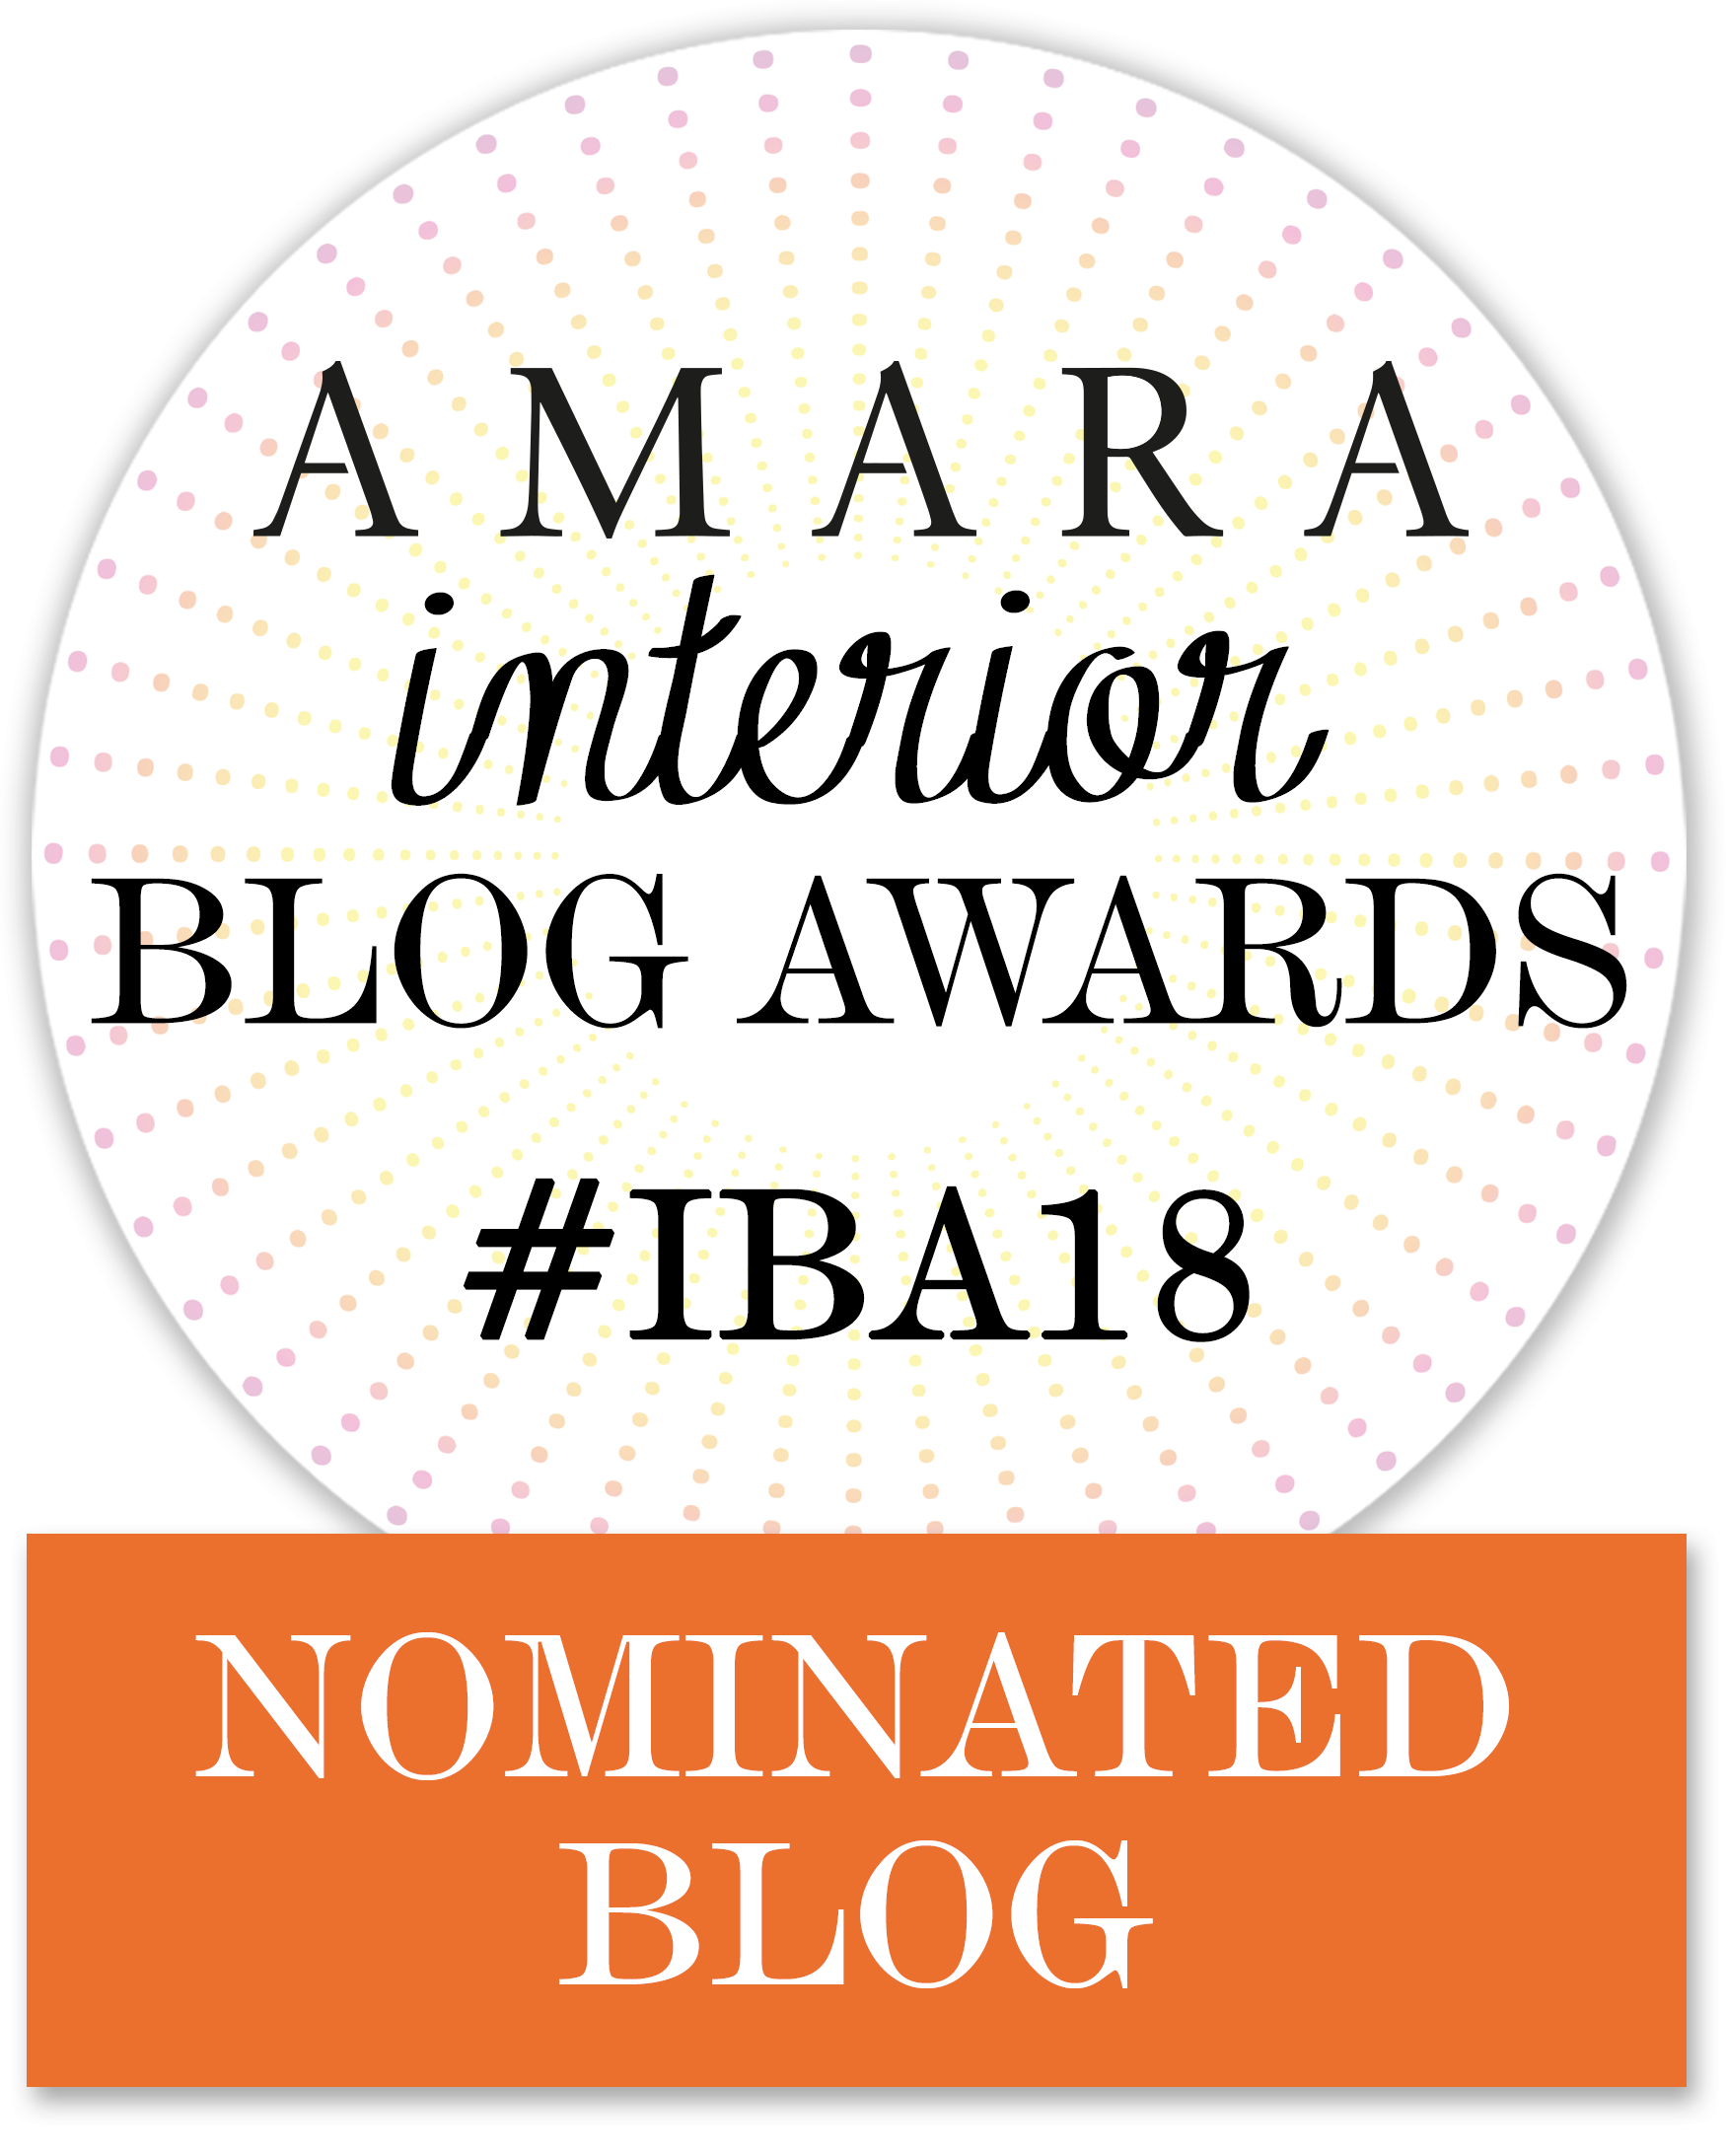 AMARA interior blog awards - 2018 - Nominated BLOG